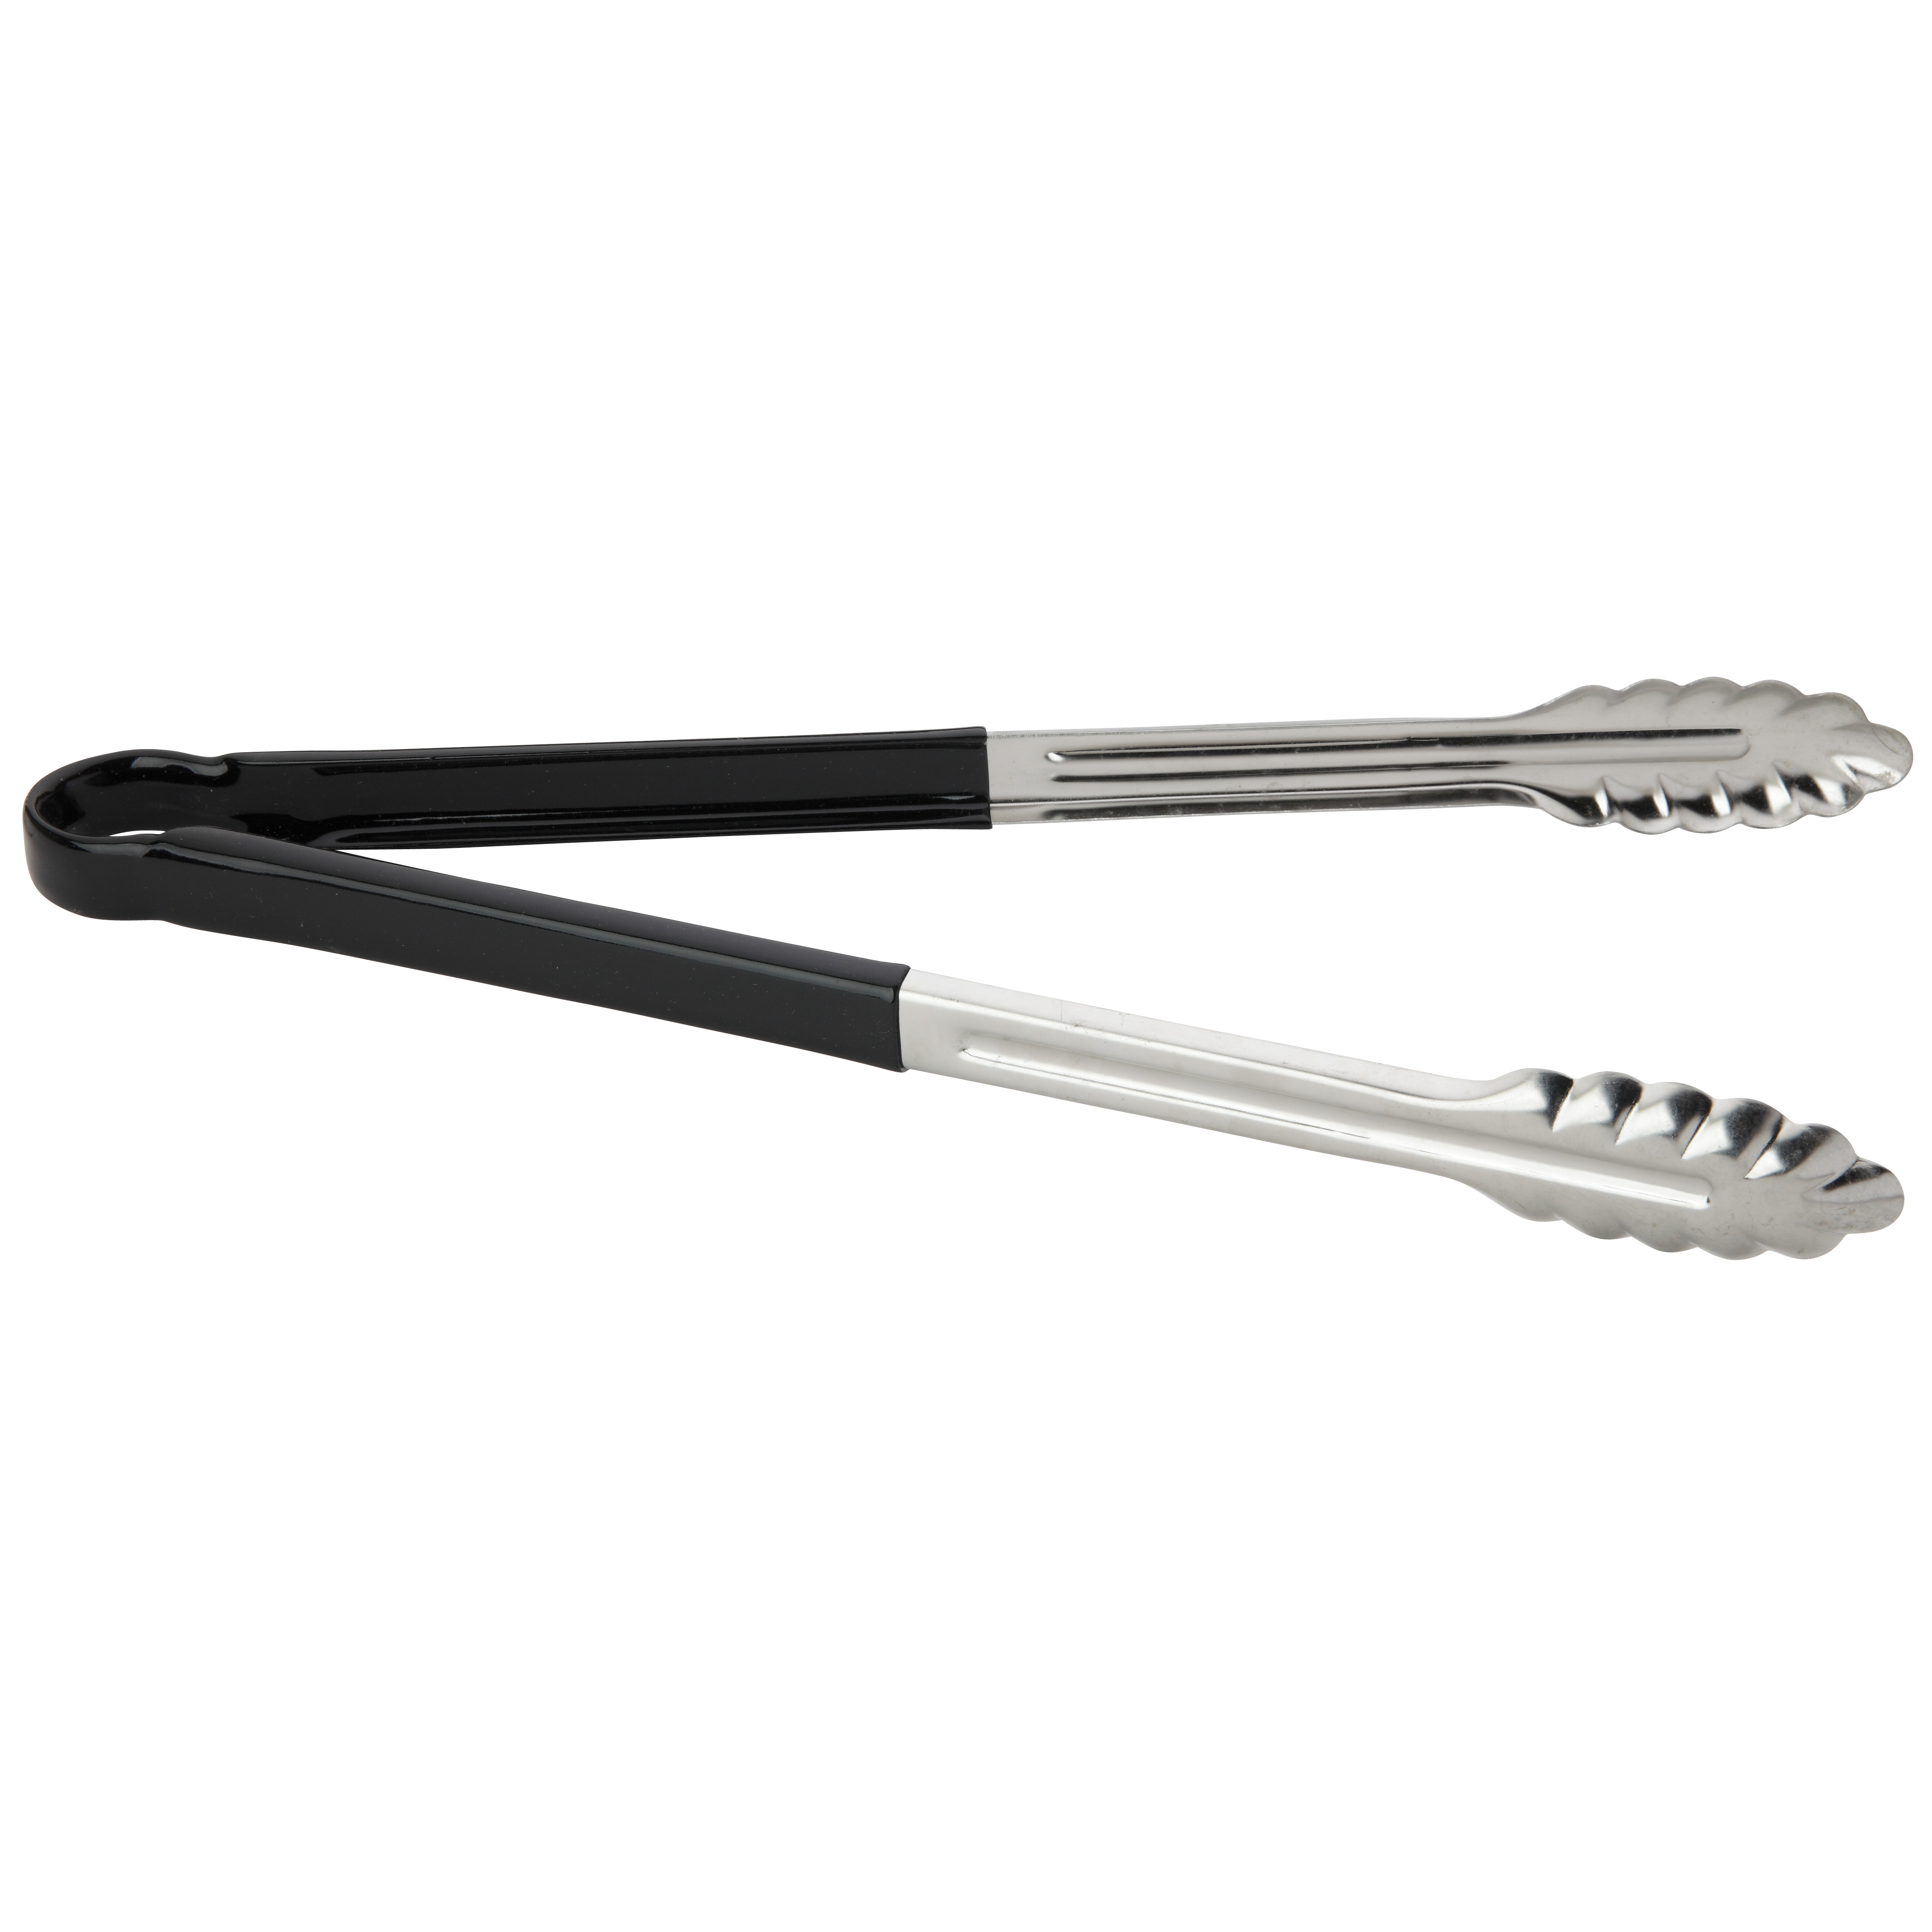 Royal Industries ROY TSC 16 B tongs, utility